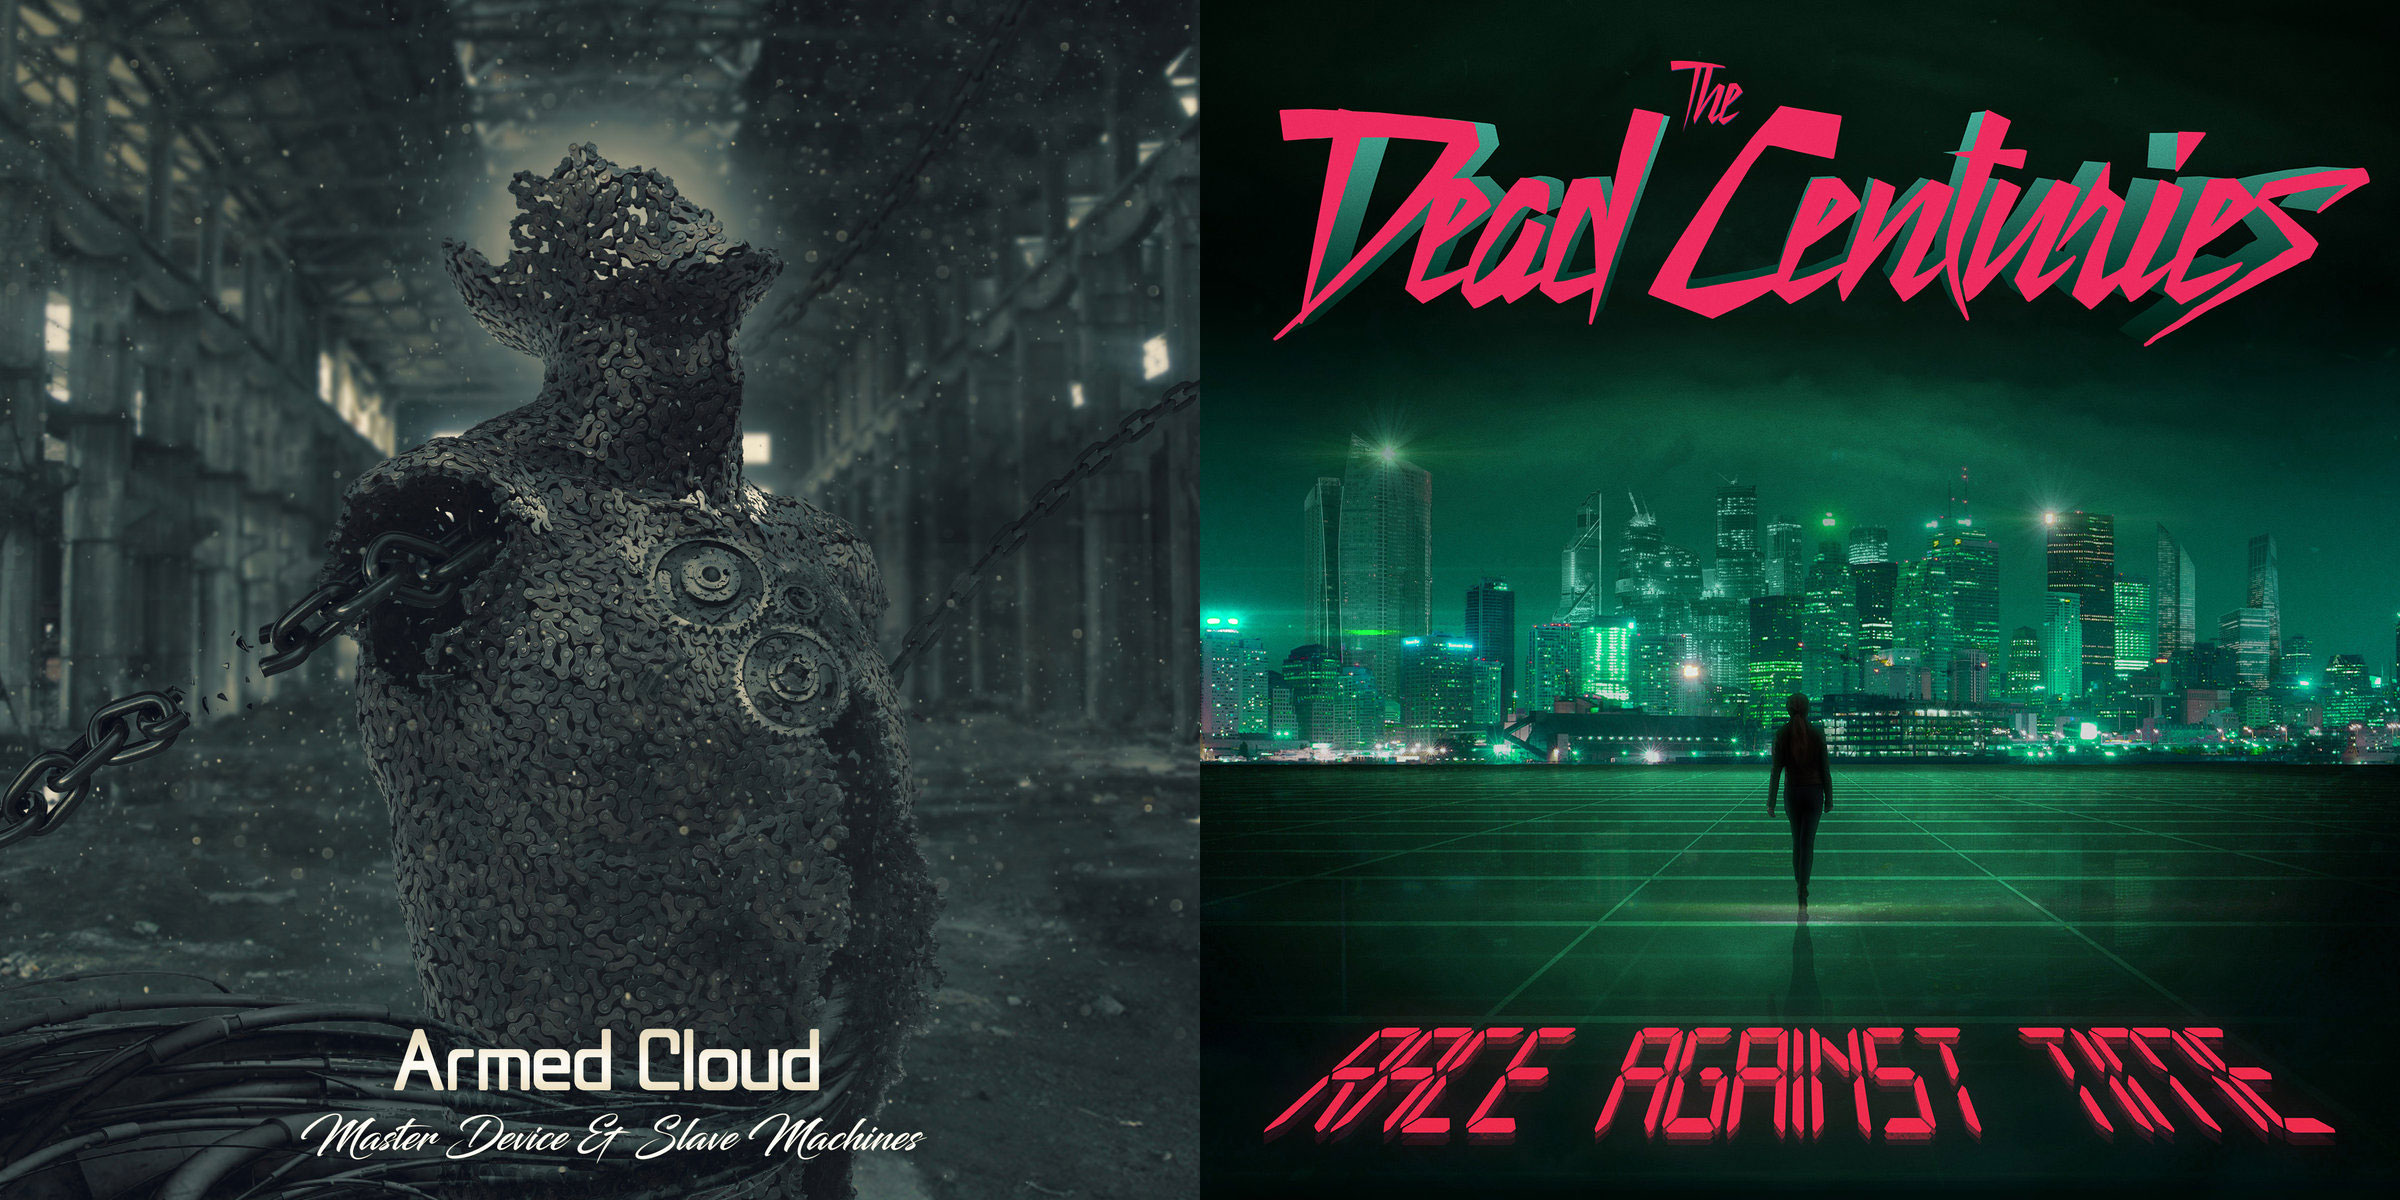 Armed Cloud / The Dead Centuries